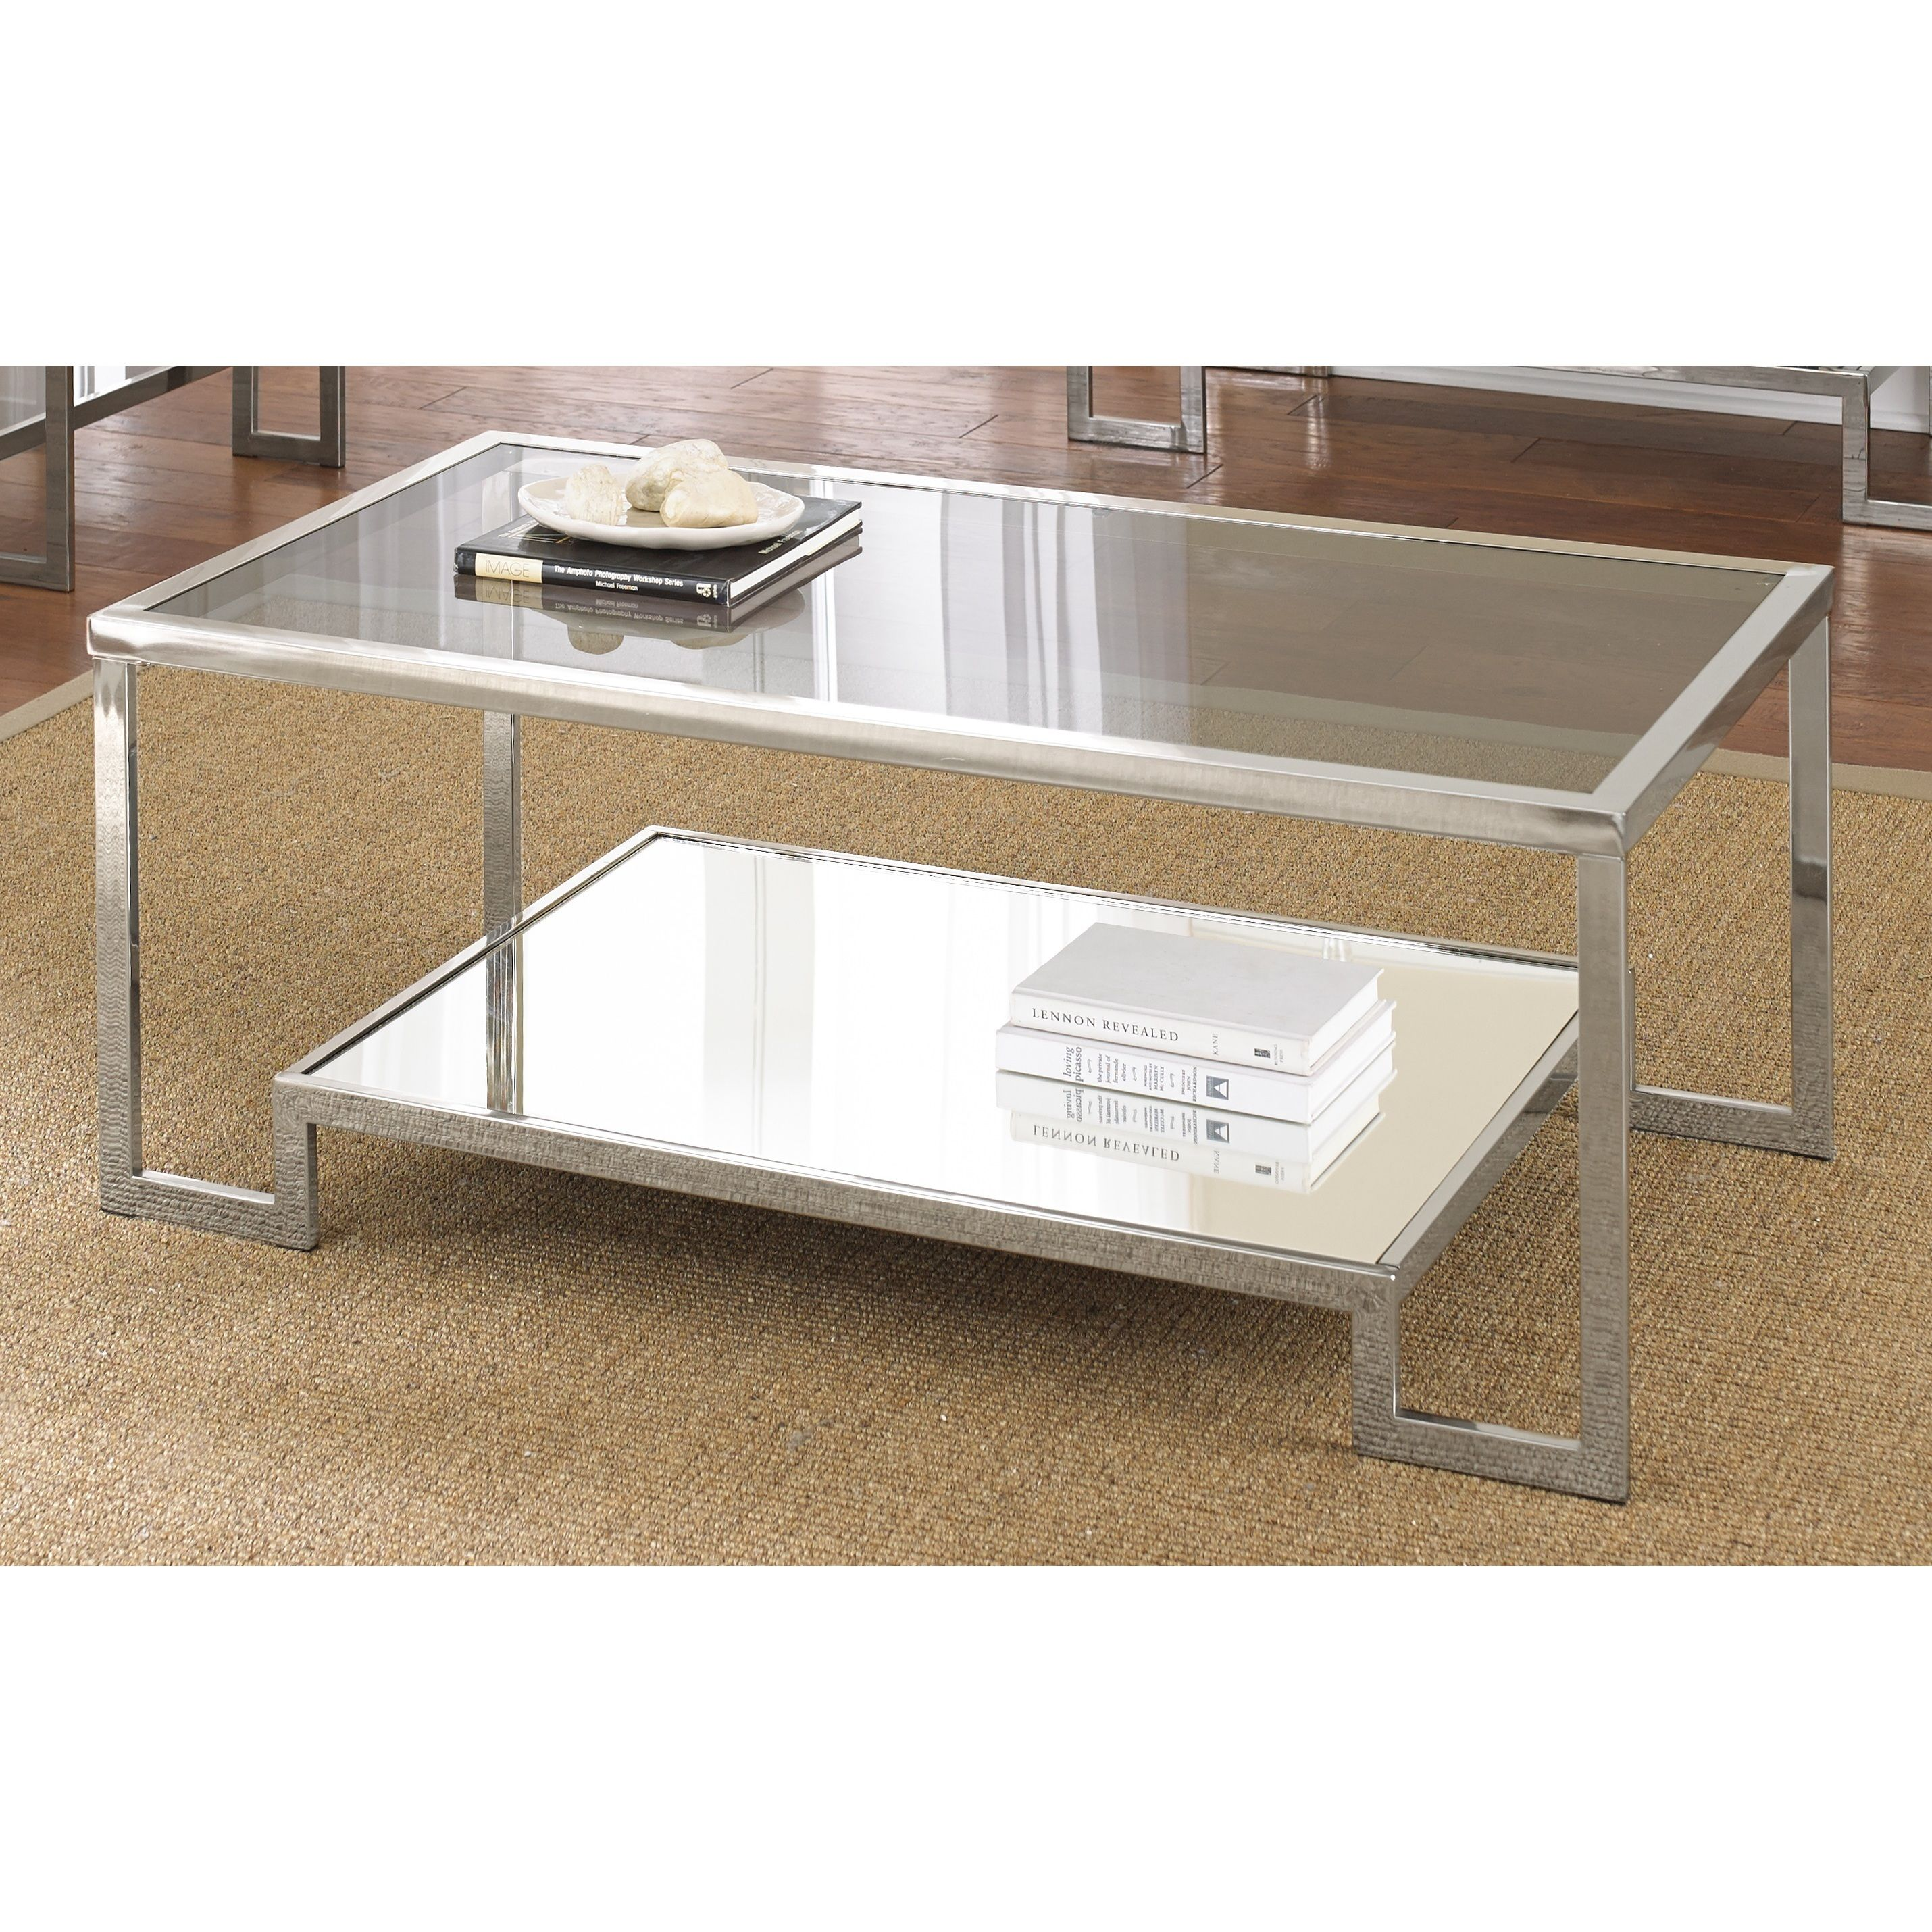 Cordele chrome and glass coffee table by greyson living by greyson contemporary and elegant the cordele chrome and glass coffee table is the perfect accent to geotapseo Images